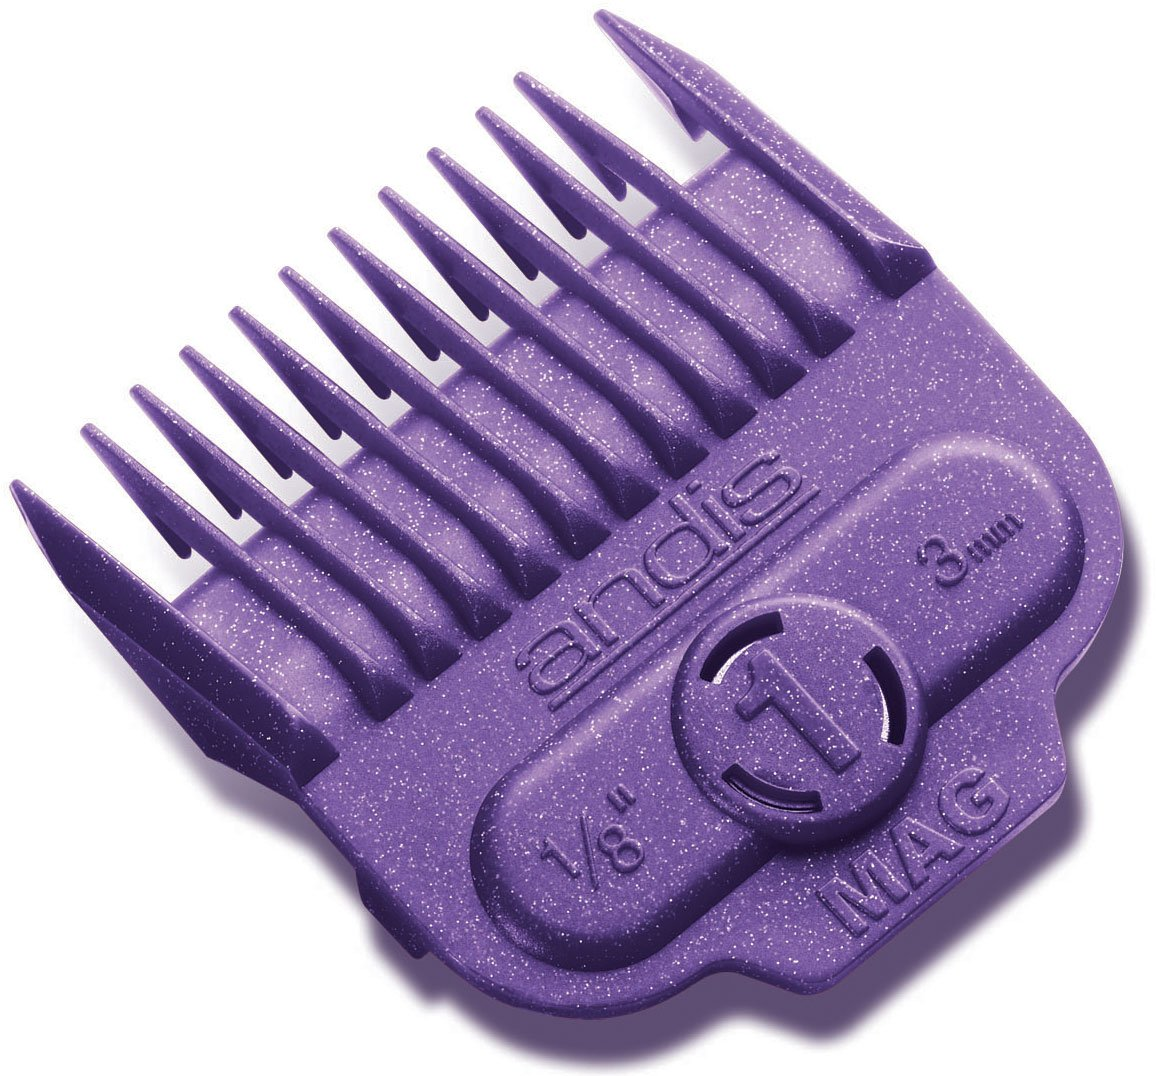 Andis Magnetic Attachment Comb Size 1 (1/8 Inch - 3mm) 66435